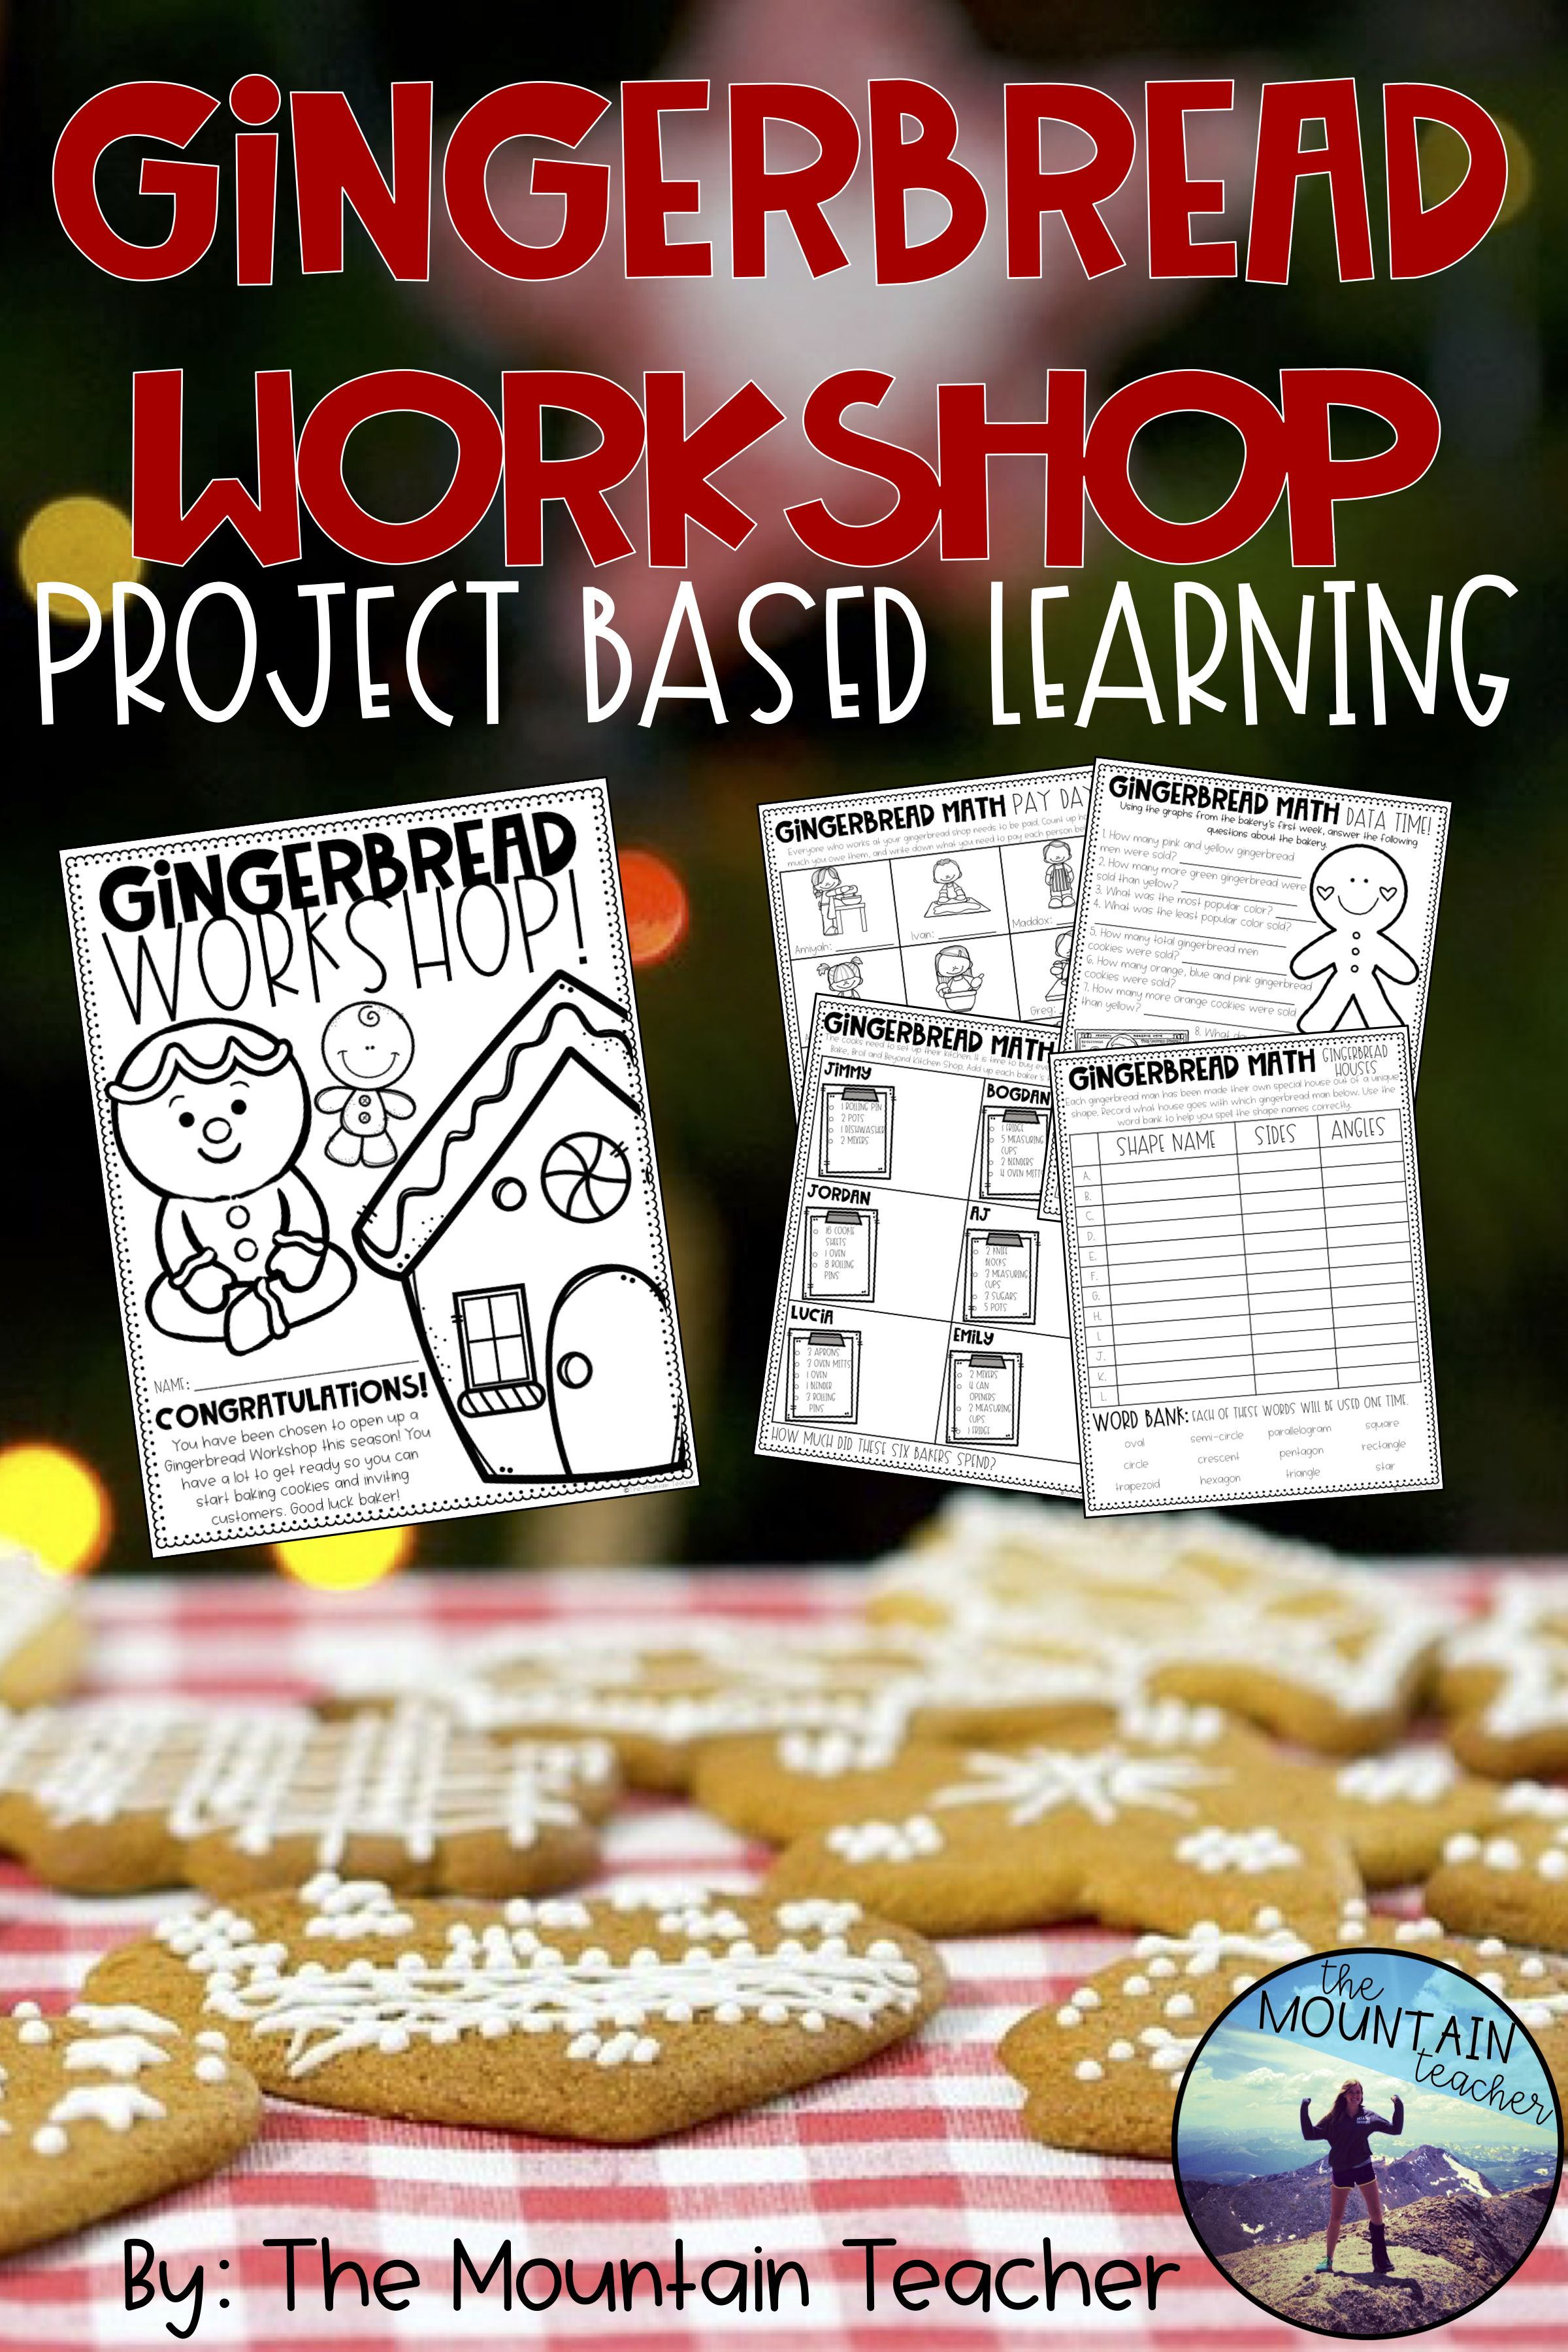 Gingerbread Man Pbl Math Project With Images